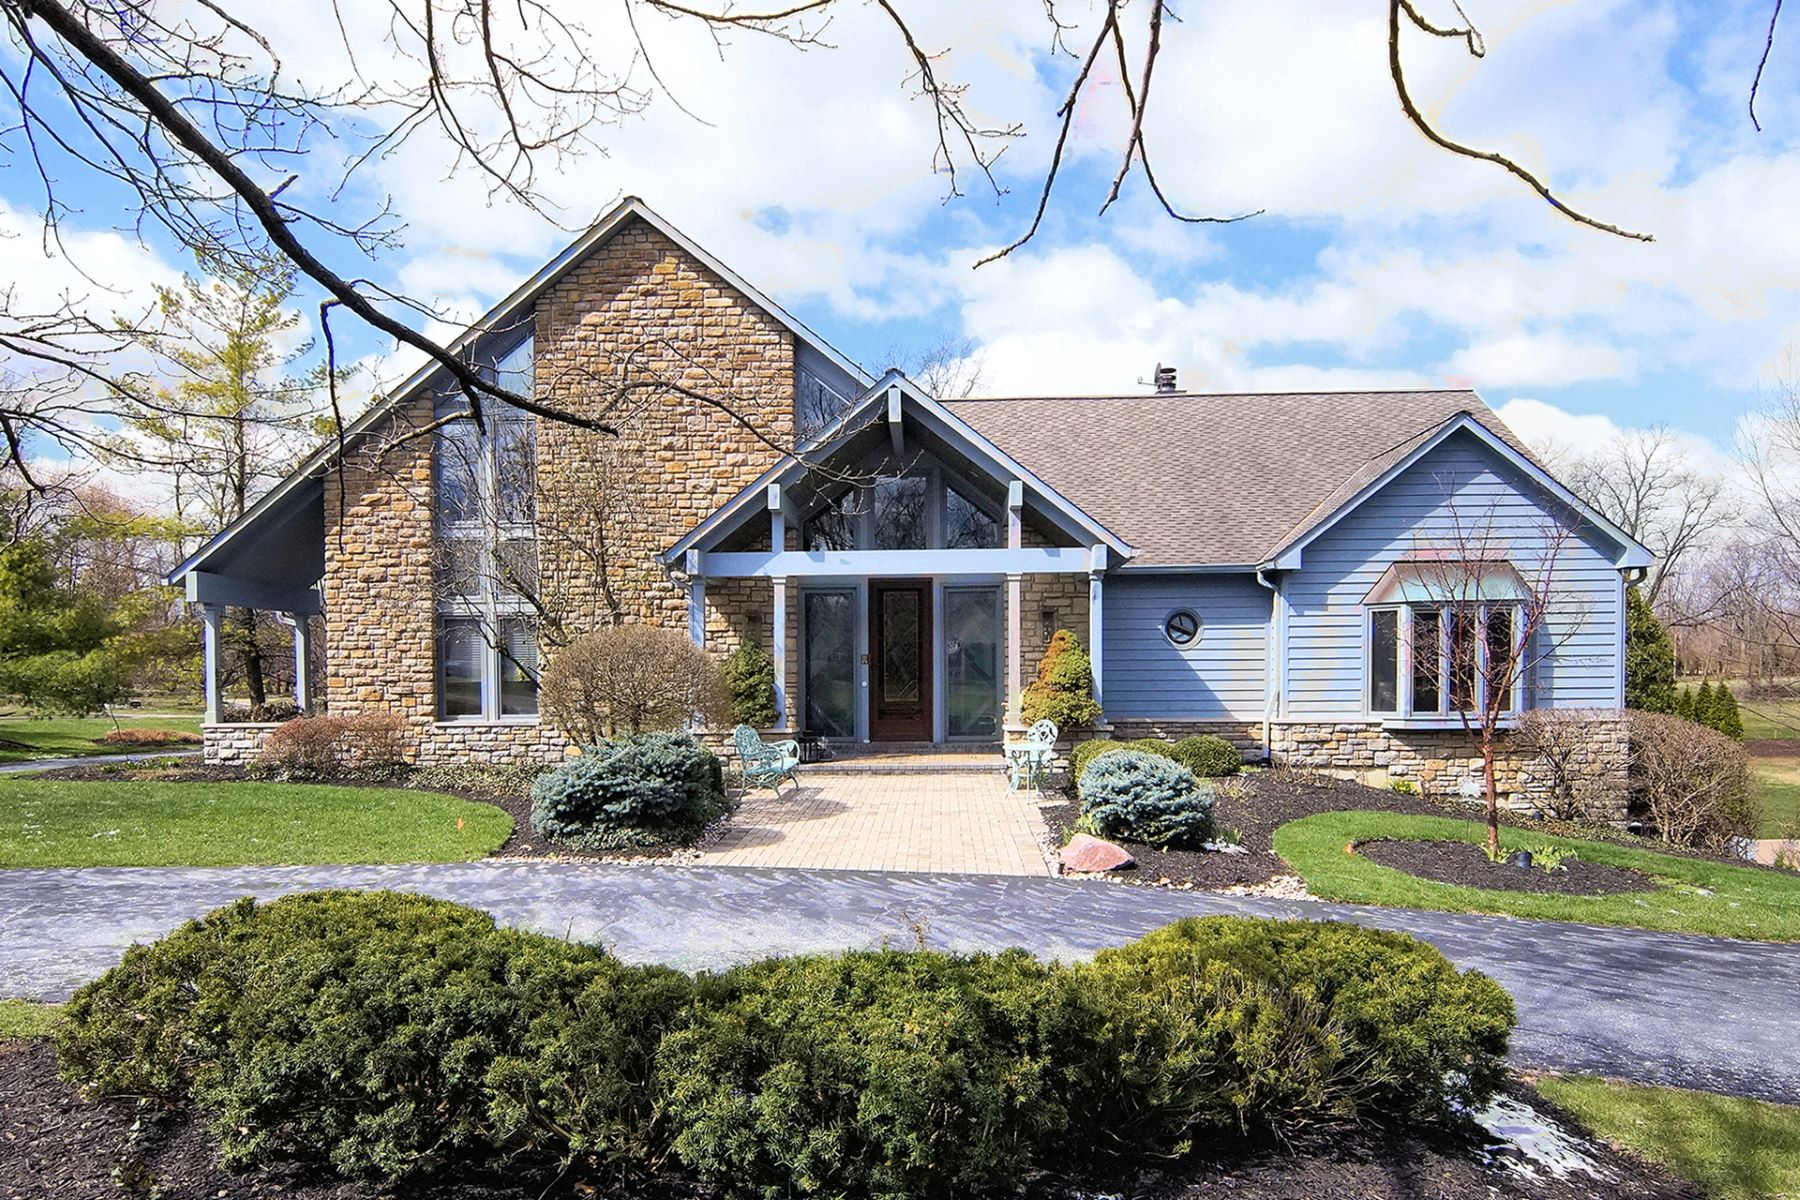 Single Family Home for Sale at Wonderful Home Offering Many Wonderful Featurse 1201 Morts Pass Wyoming, Ohio 45215 United States